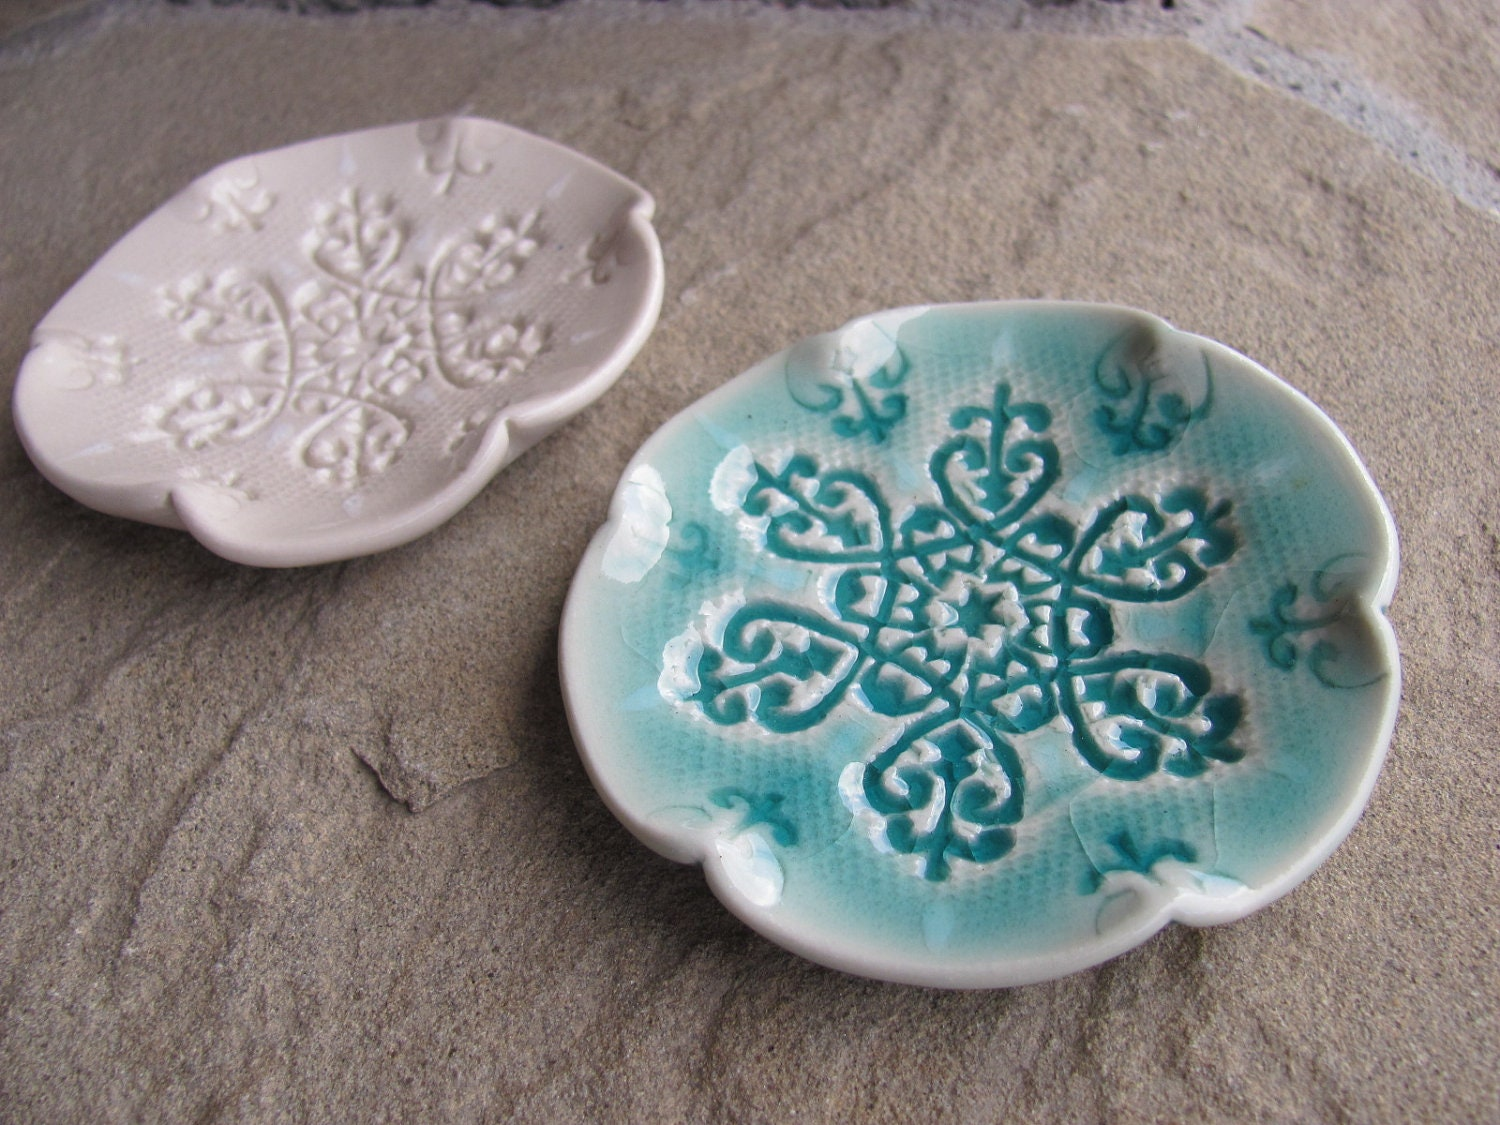 Trinket Dish Ceramic White or Aqua Blue Porcelain Stamped with Snowflake Textured Winter Snow Ice